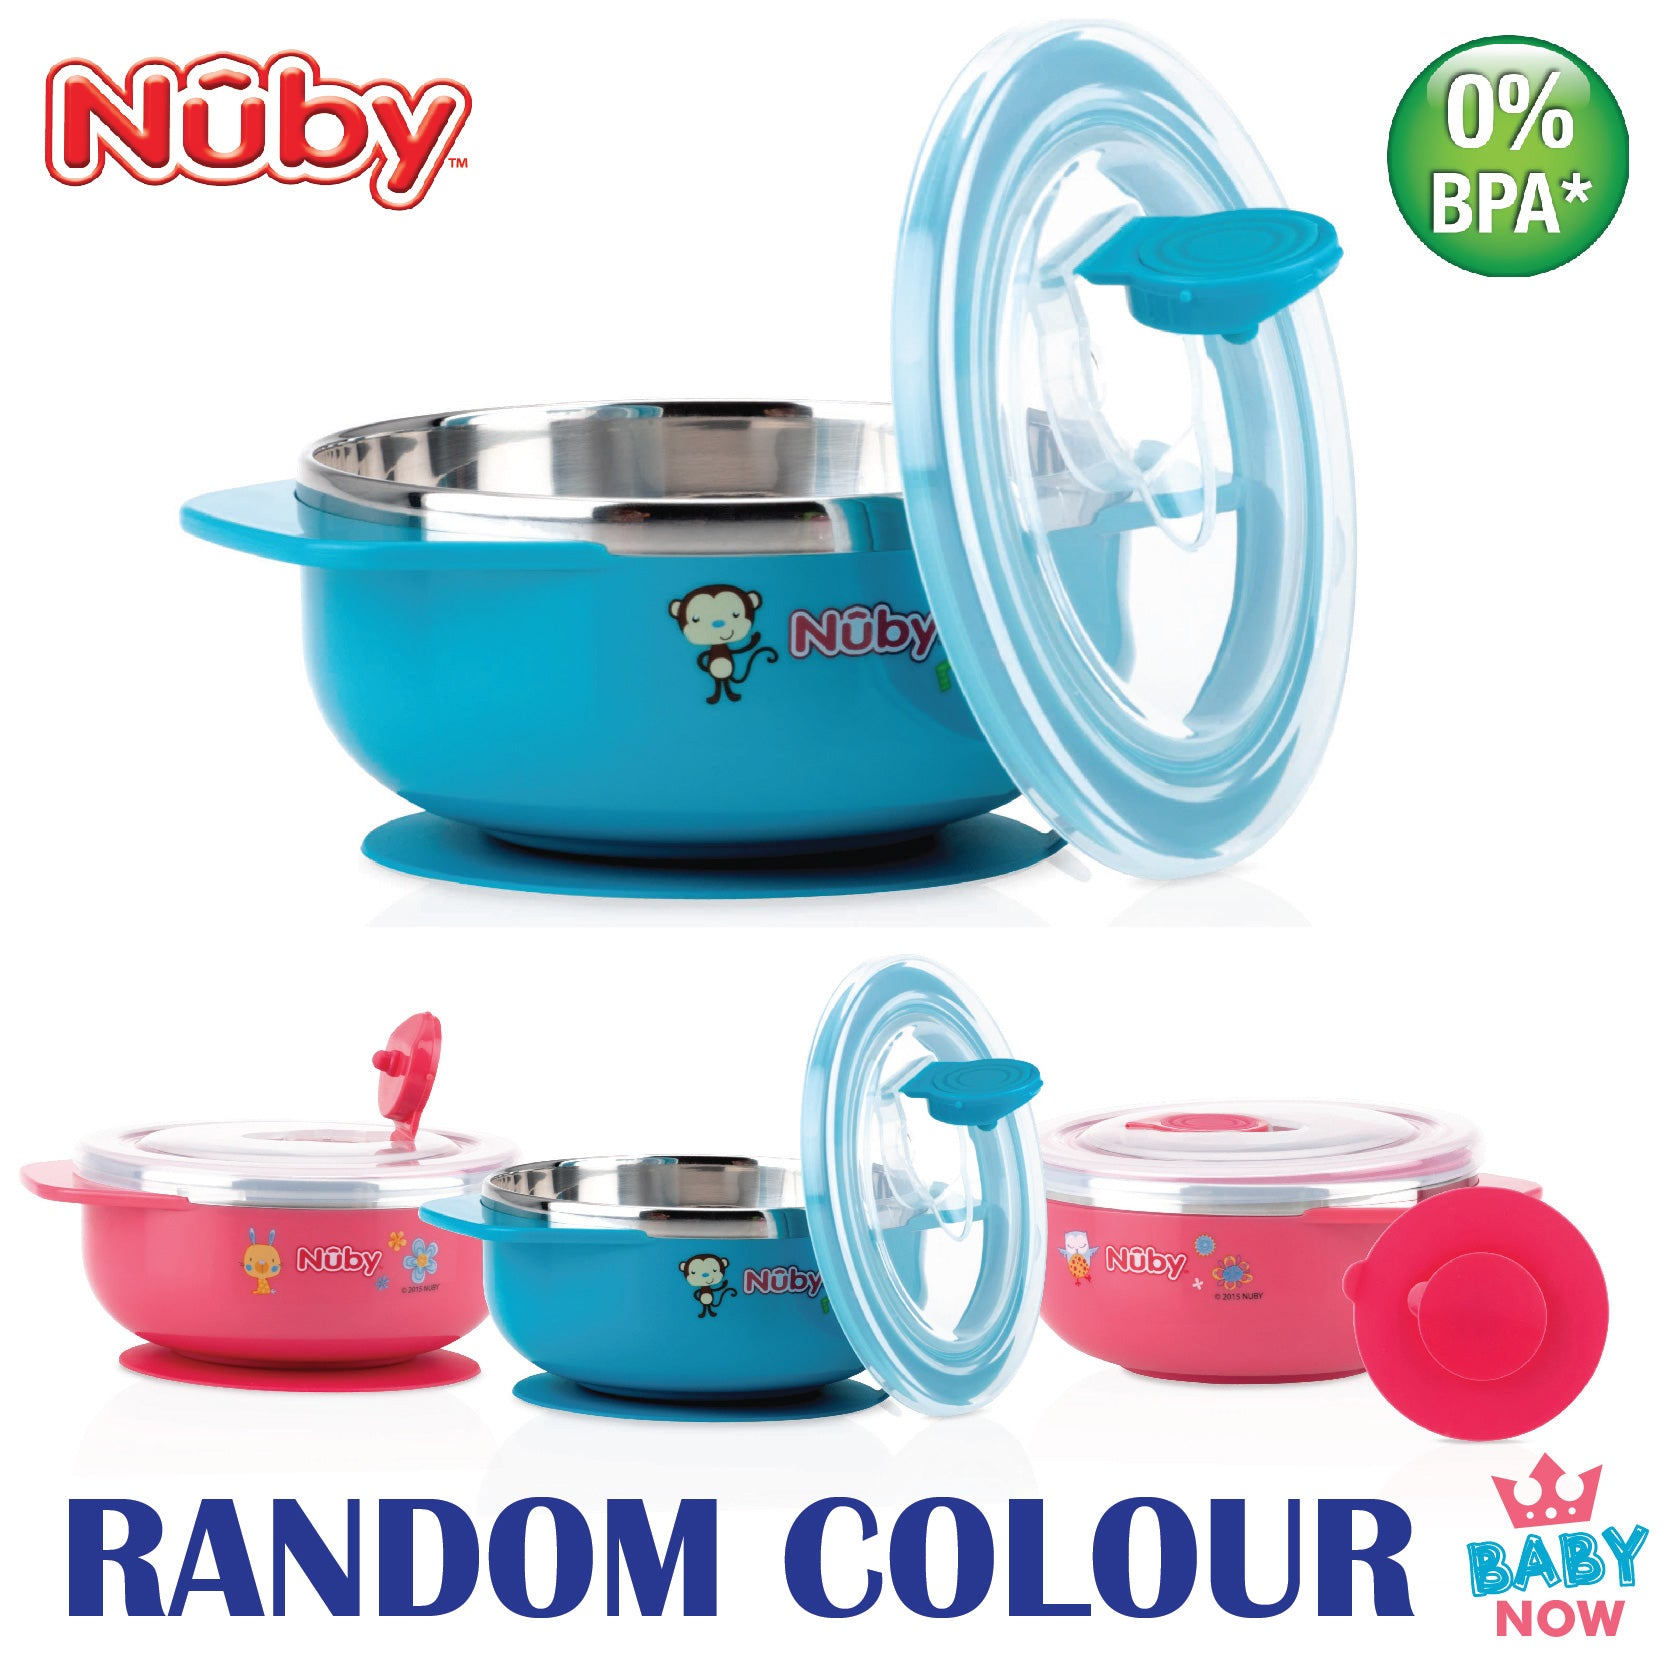 NB5572 Nuby 1PK 8oz/250ml Stainless Steel Printed Bowl With Handle (RANDOM COLOUR)